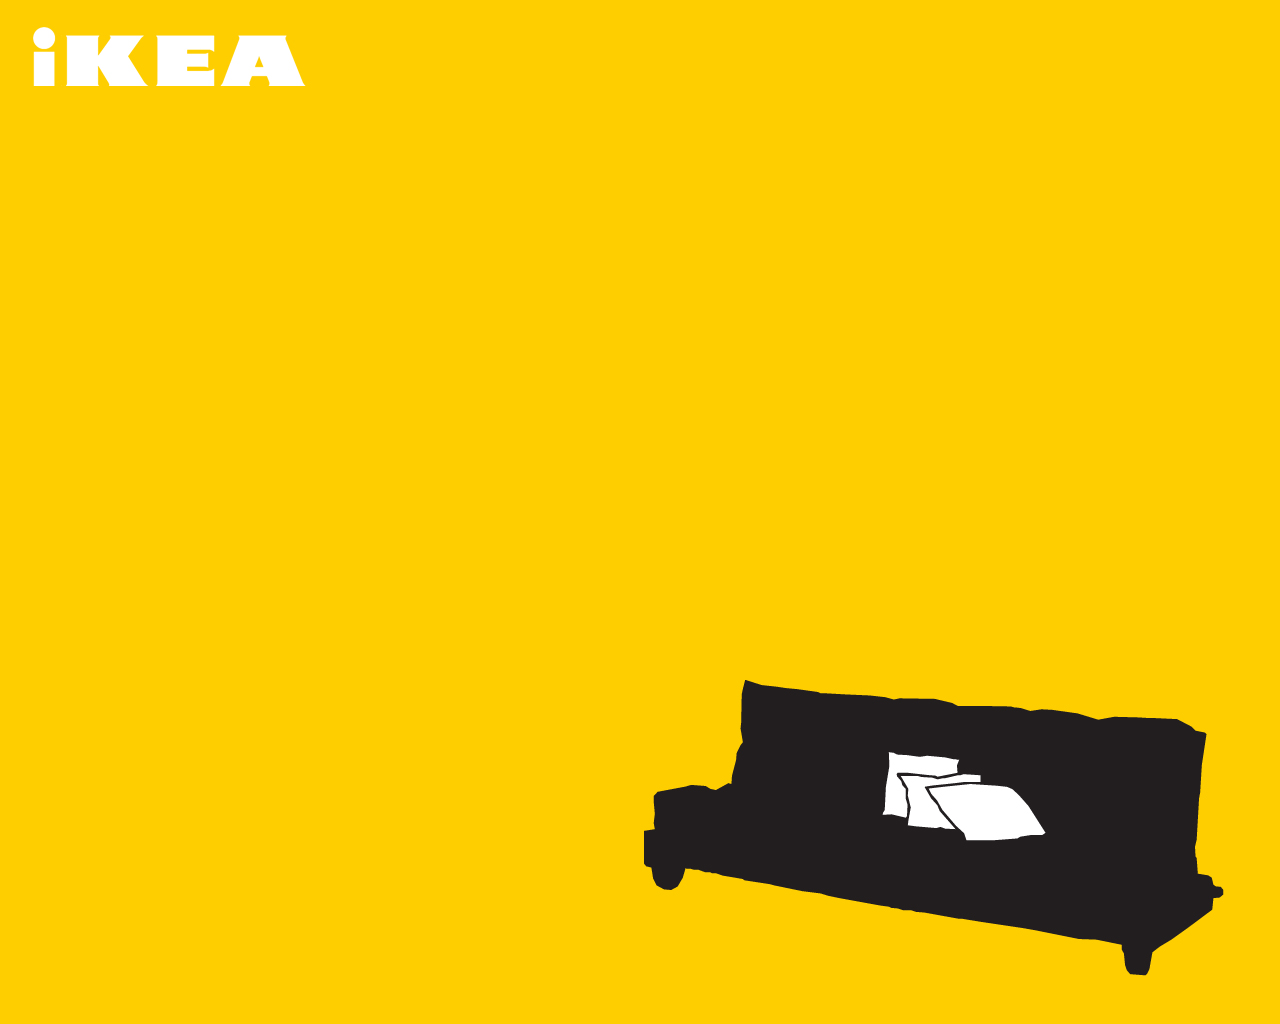 Artd 362 letterform waming final project ikea poster for Poster ikea